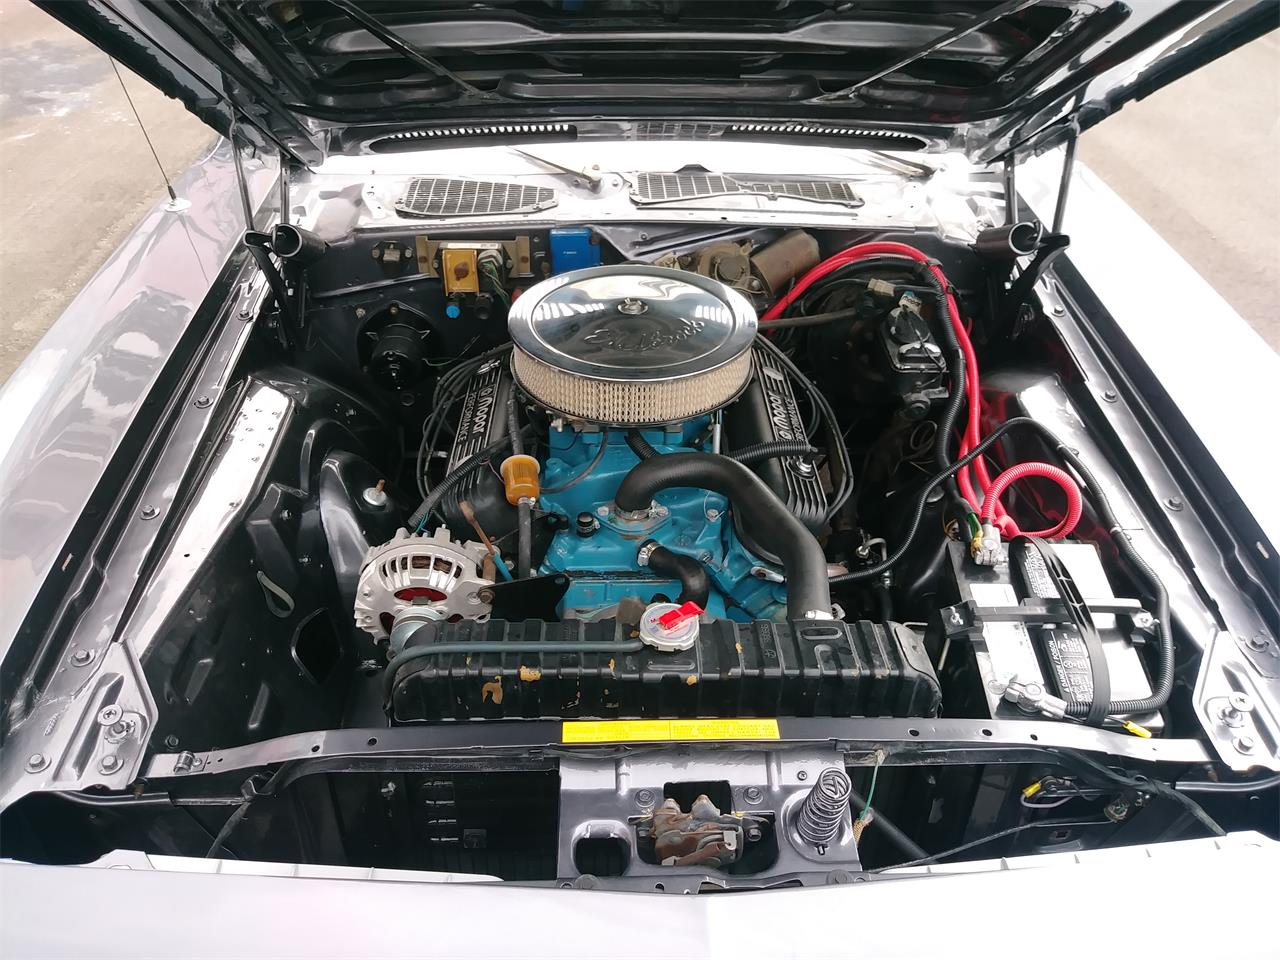 Large Picture of '73 Barracuda - $43,000.00 Offered by a Private Seller - PUNY